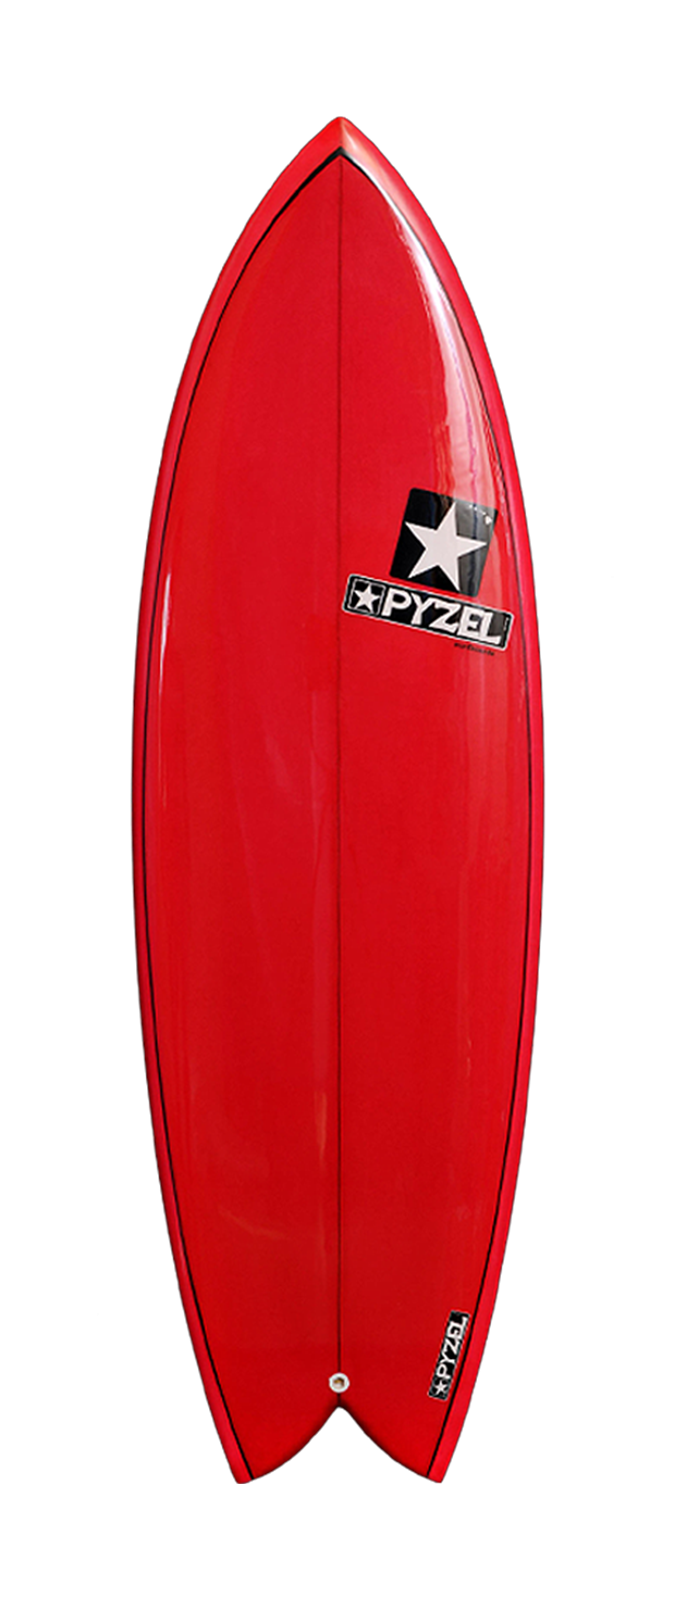 Astro Glider surfboard model deck